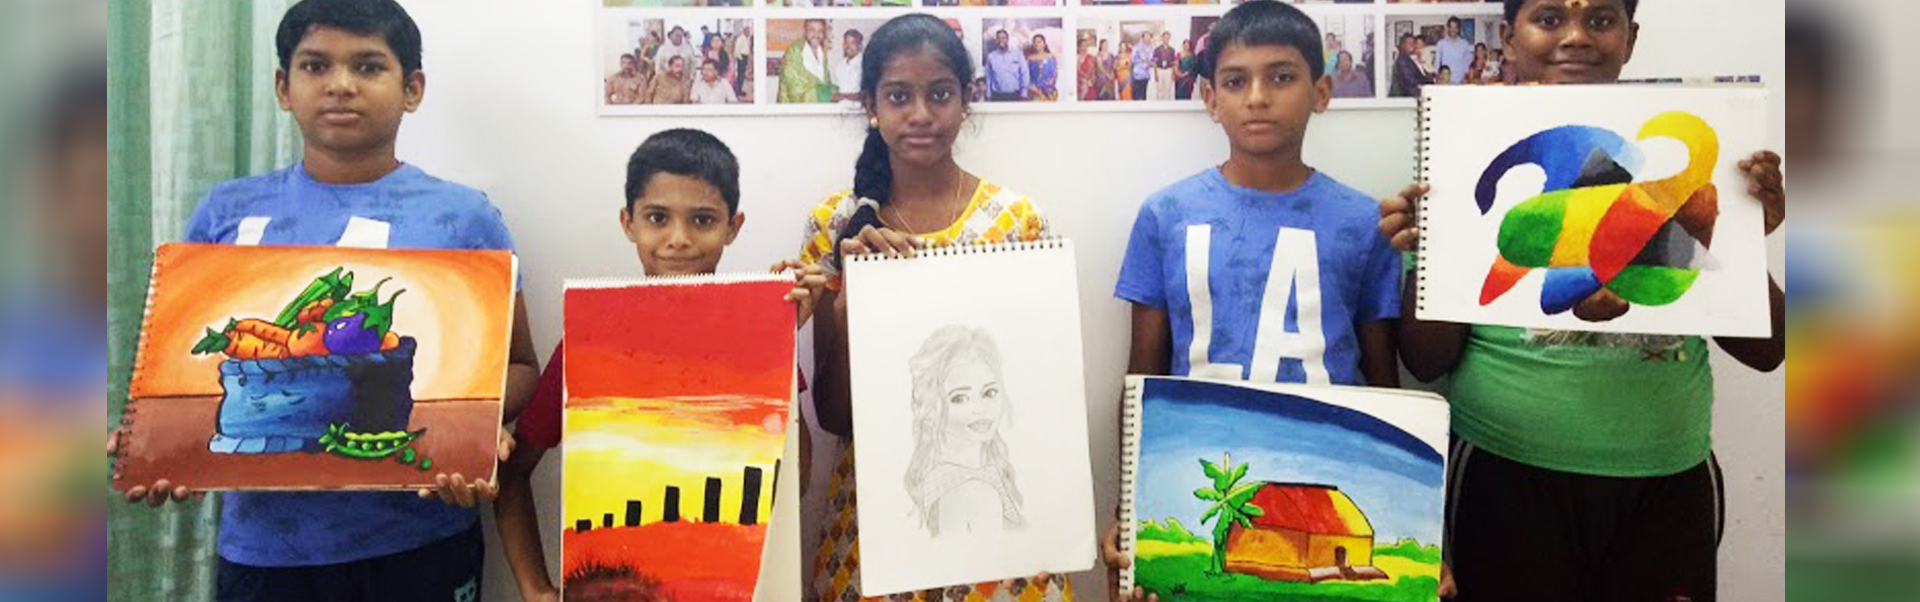 Dessin School of Arts, Dessin Academy, Painting for kids in Anna Nagar